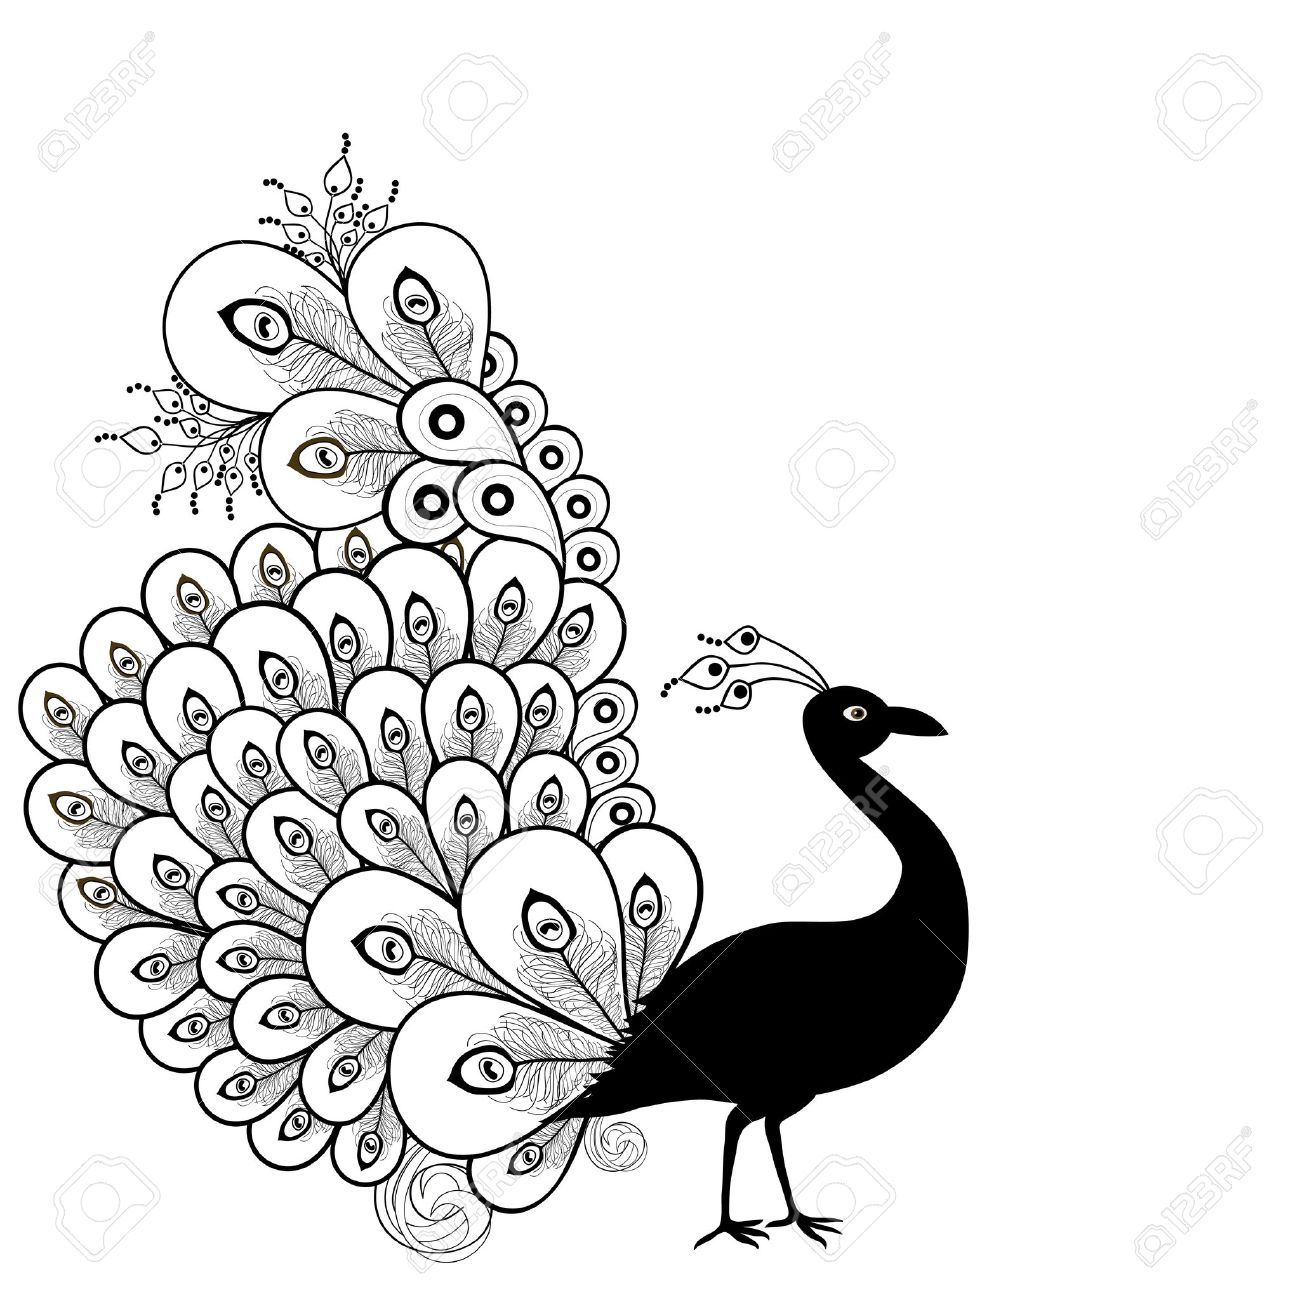 Peacock clipart black and white Peacock white 839 and Peacock